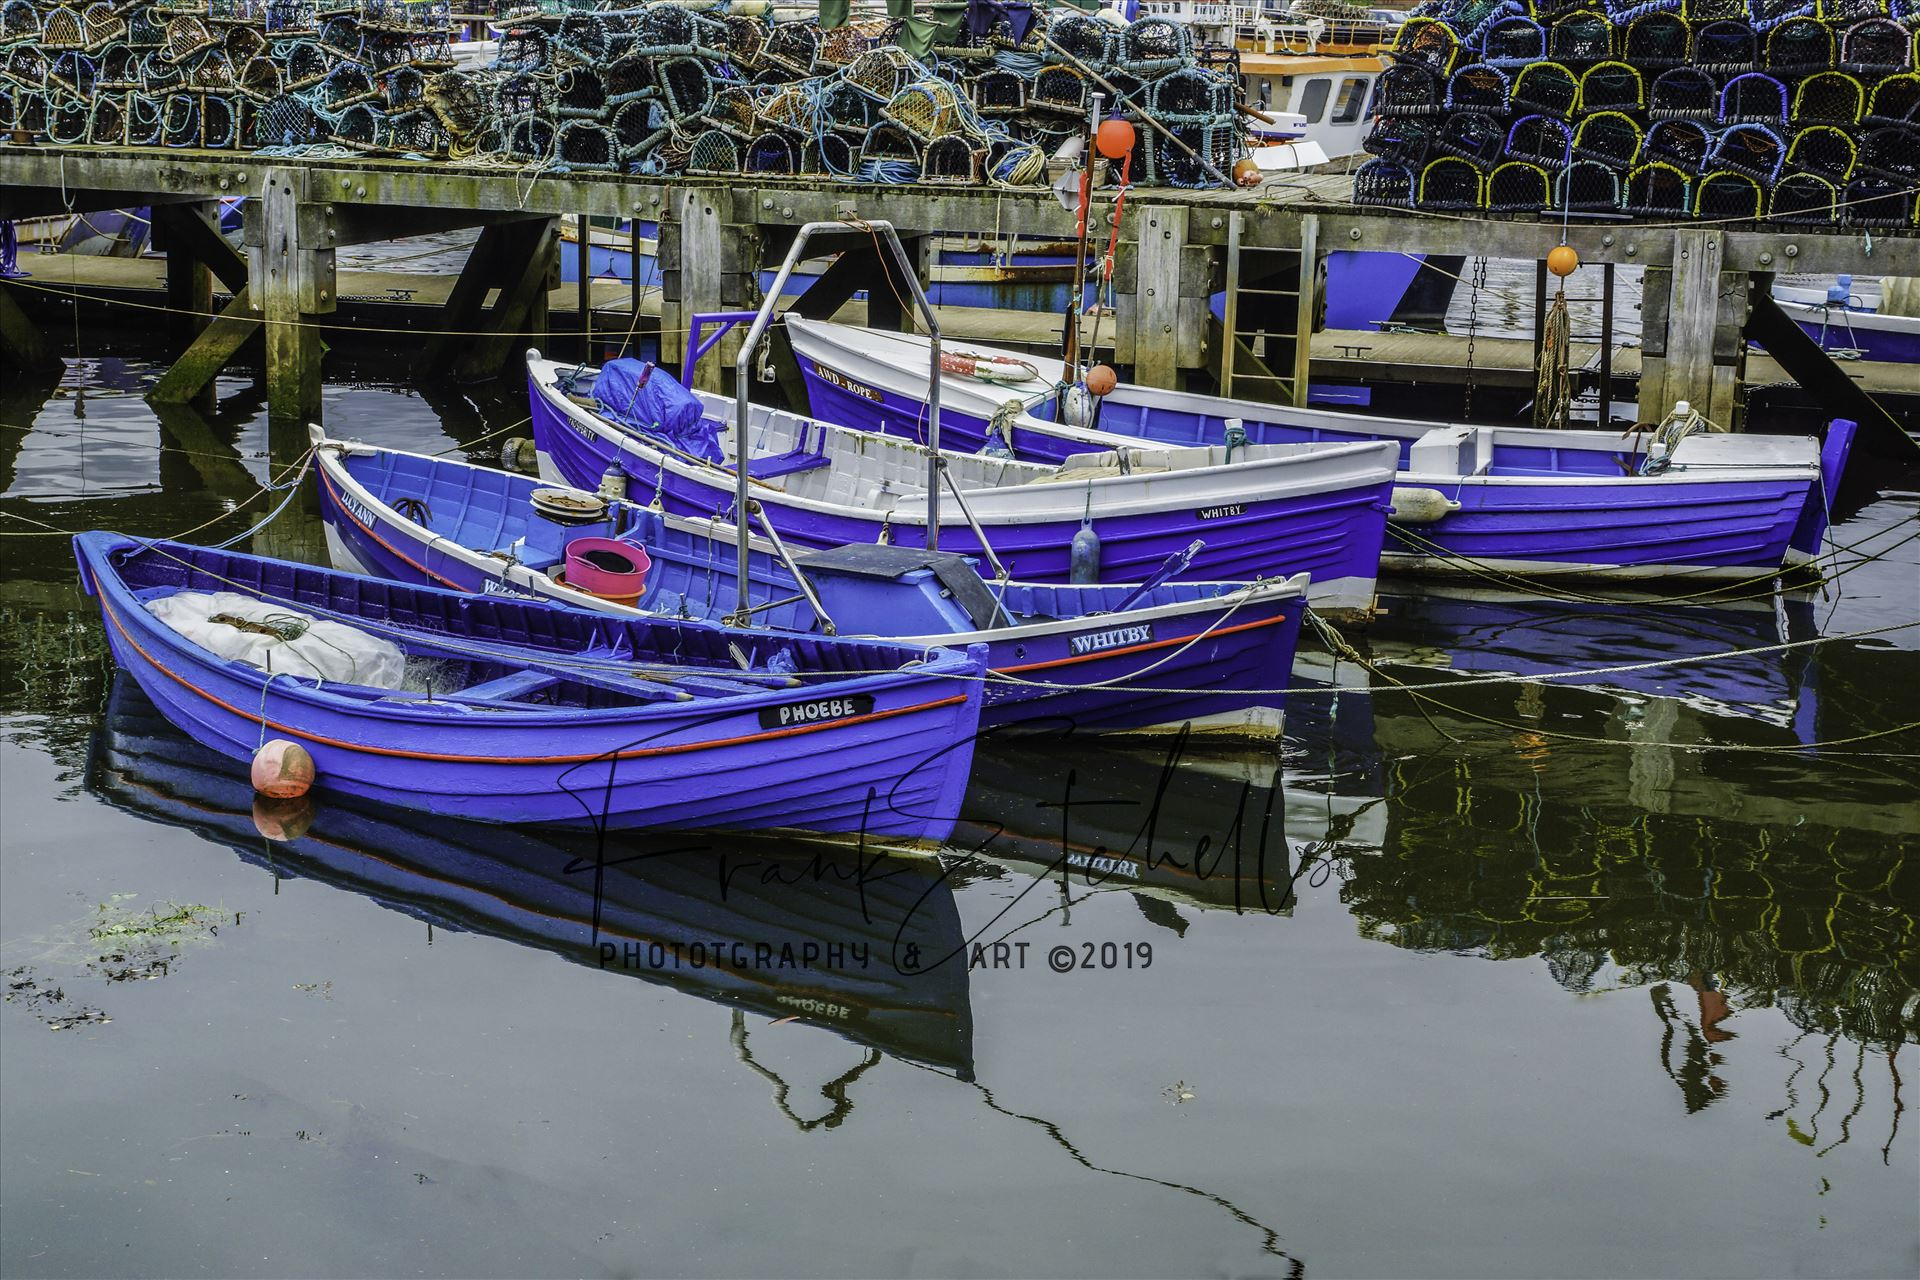 Four Tethered Boats - On a trip to Whitby in Yorkshire in 2012 and a walk through the town brought us to the harbour quay side and these tethered boats. So colourful and clean, nicely reflecting in the water of the River Esk and a large stack of lobster pots behind. by Frank Etchells Photography